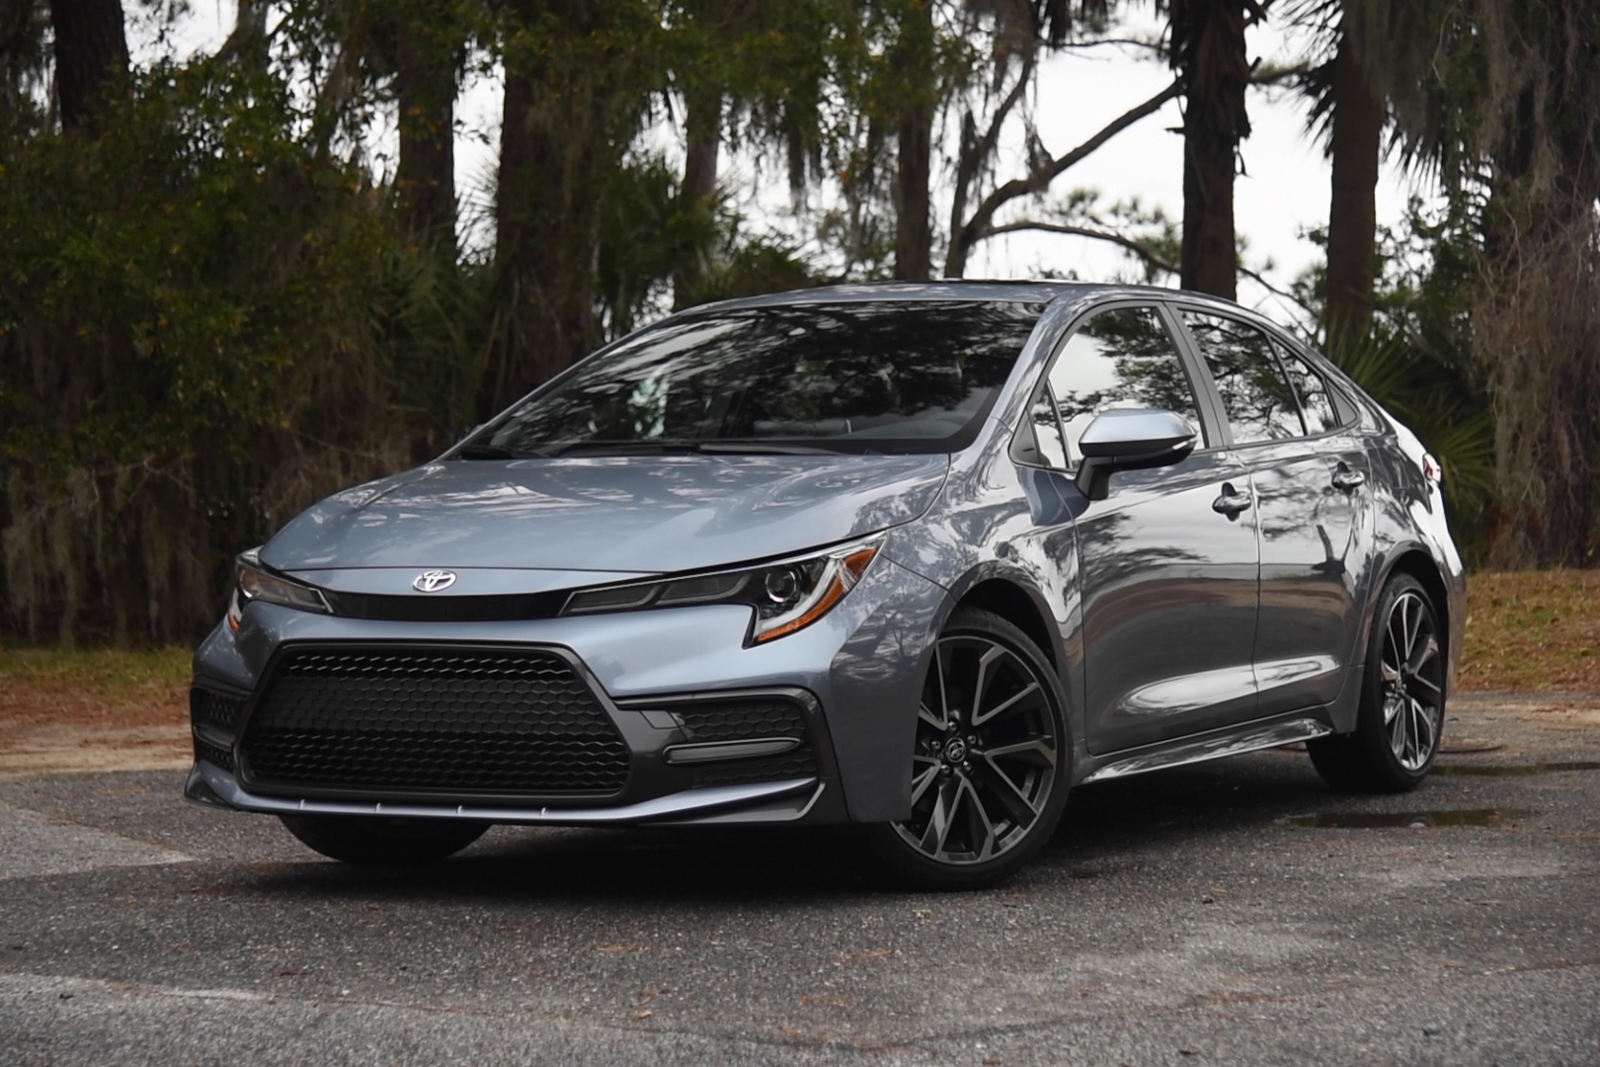 2020 Toyota Corolla Review and Video | Toyota Nation Forum